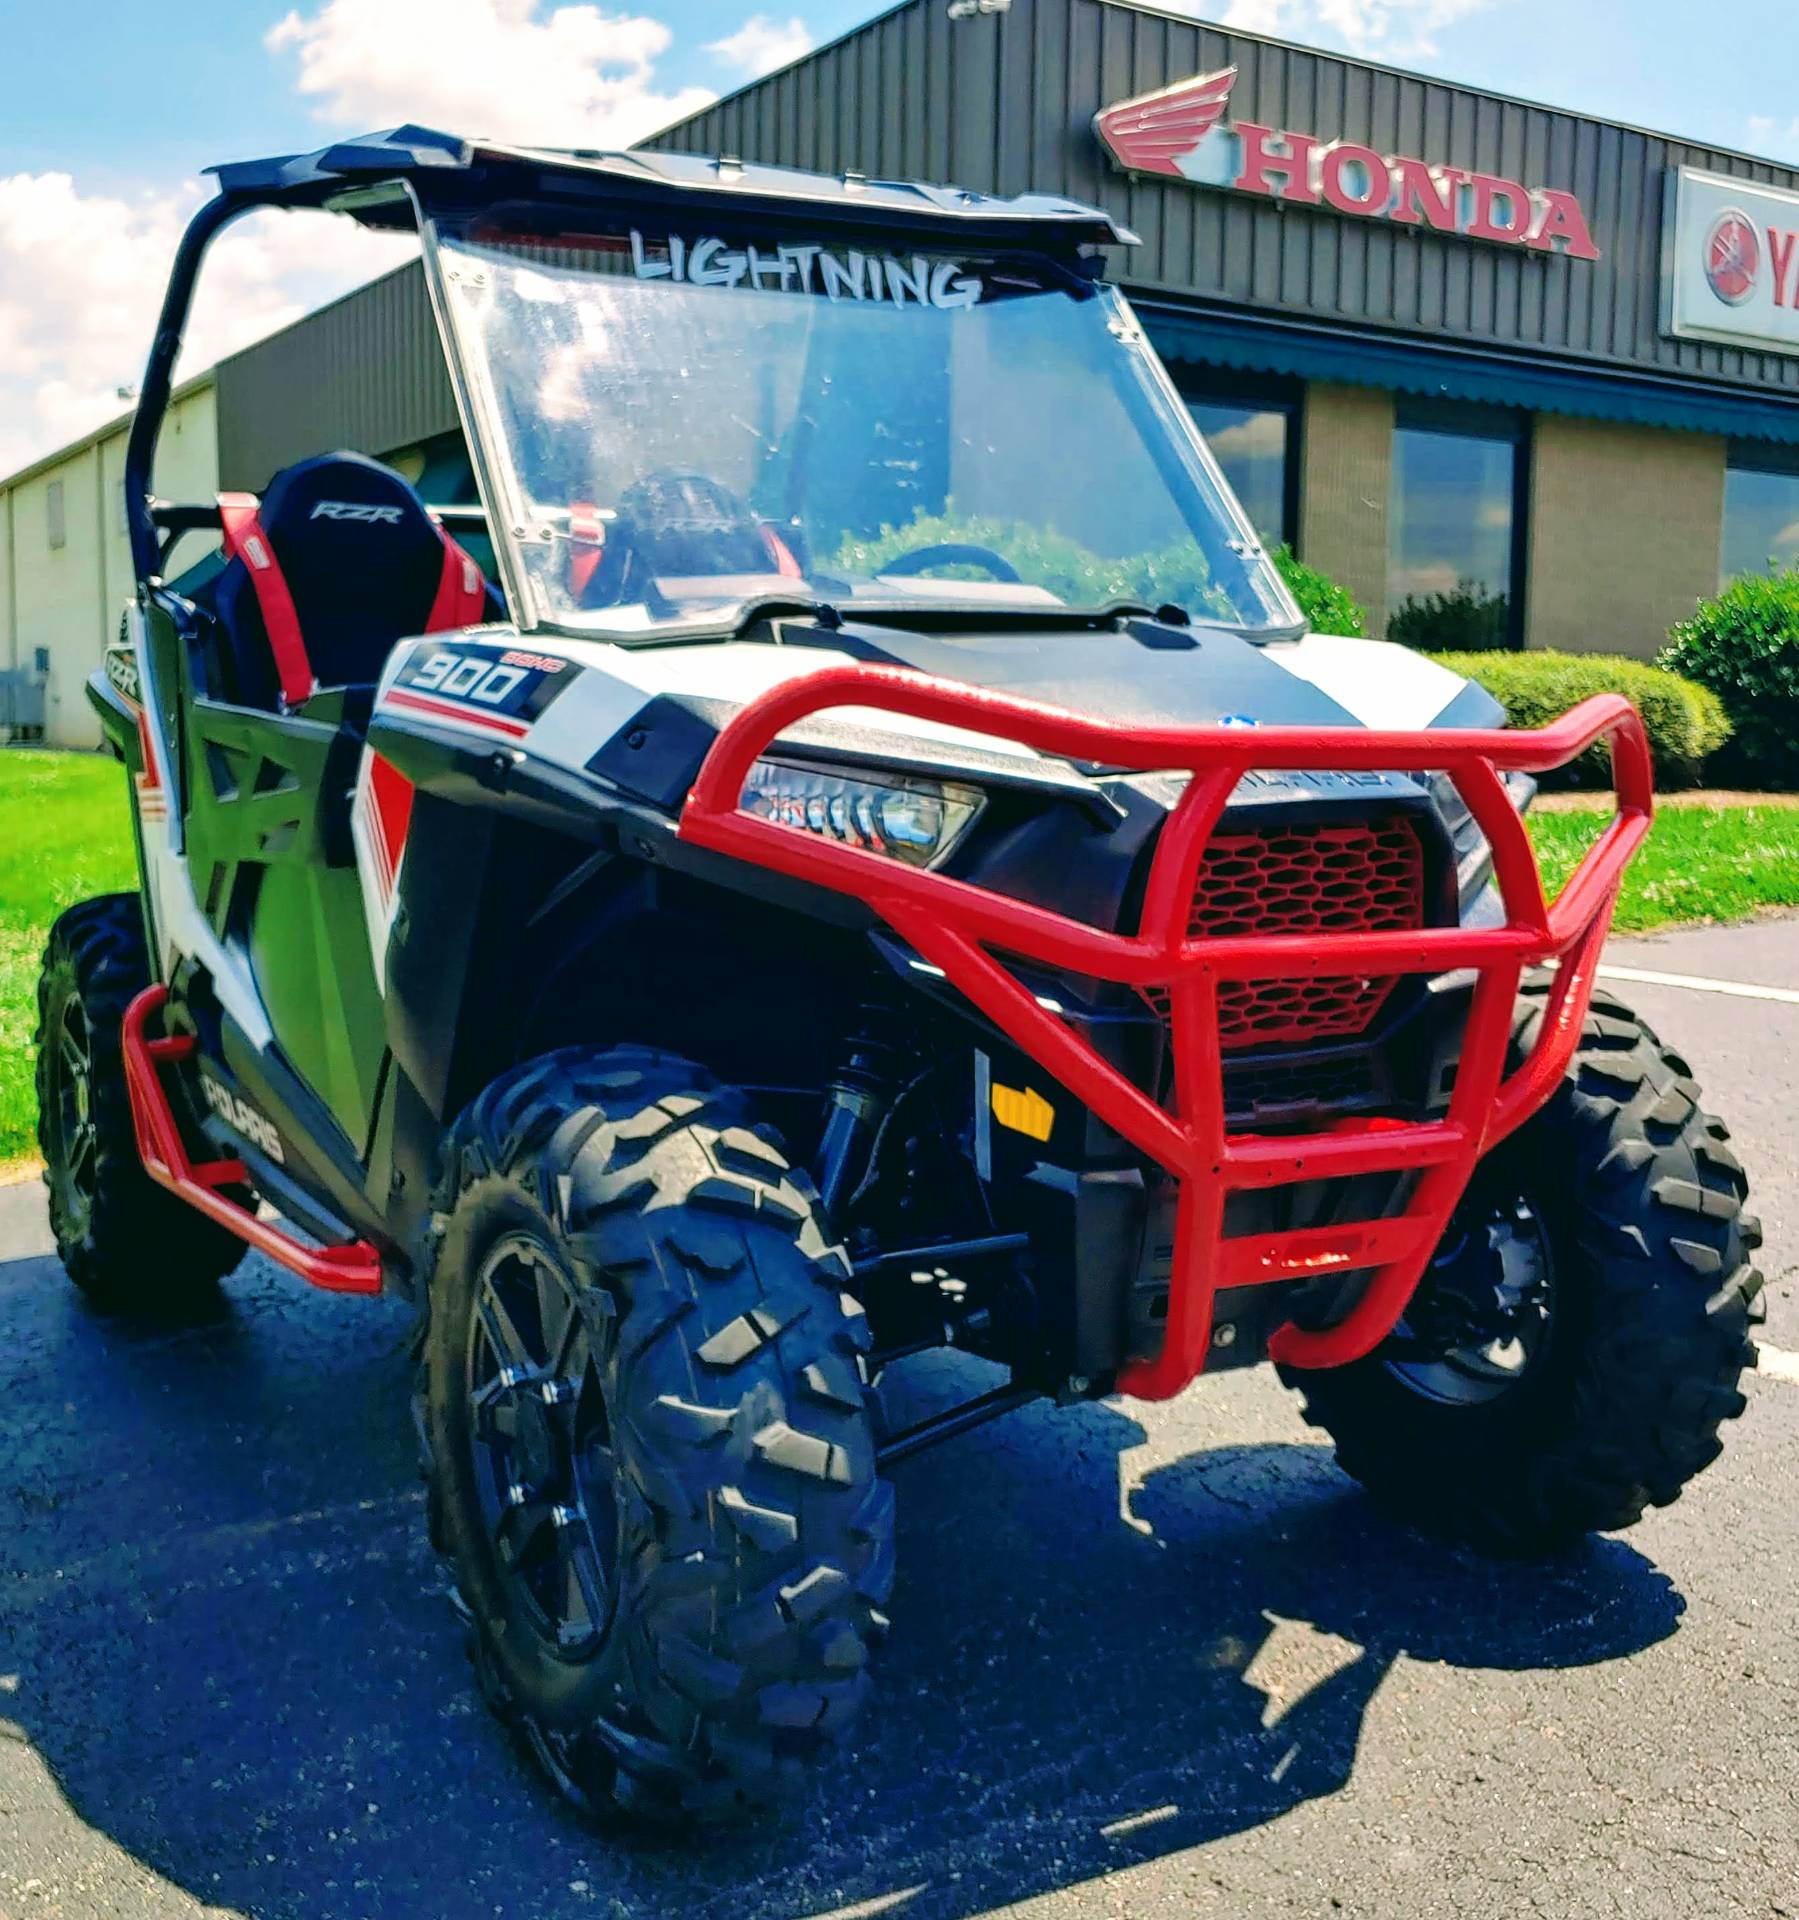 2016 Polaris RZR 900 Trail in Statesville, North Carolina - Photo 3